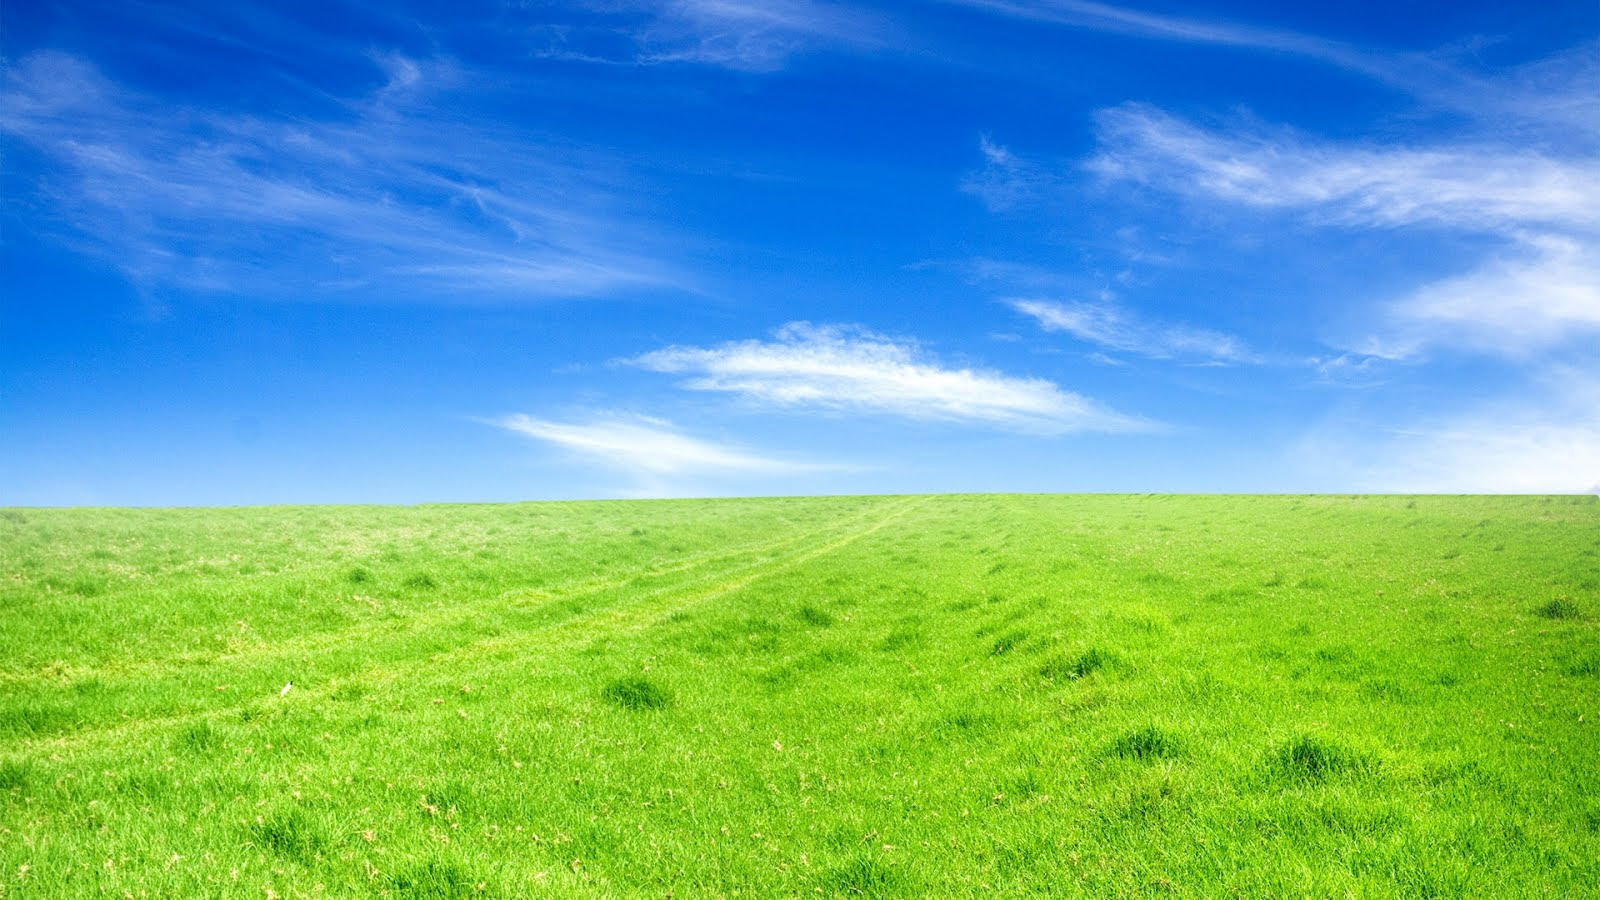 Sky Grass Field Free PPT Backgrounds for your PowerPoint ...